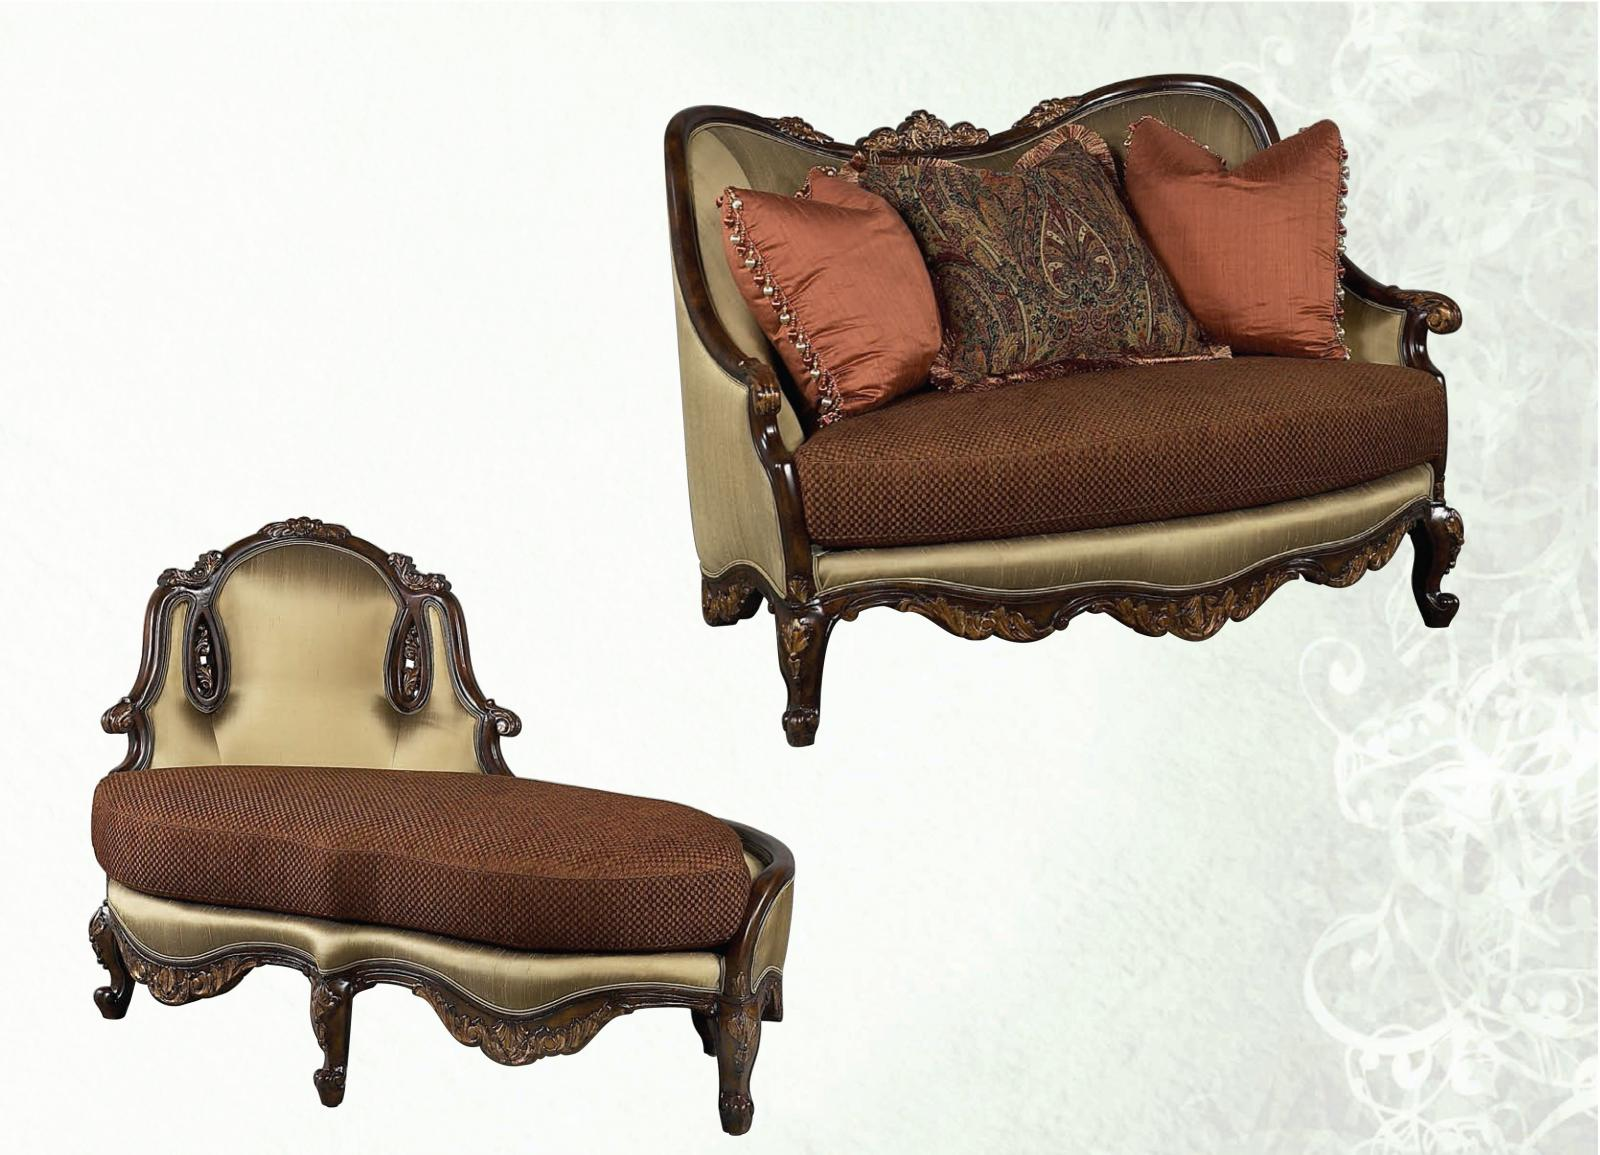 Bennetti Newport Bronze Silk Chenille Luxury Chair 1/2 & Chaise Lounge Set 2P Abrianna Chair 1/2 Chaise Lounge